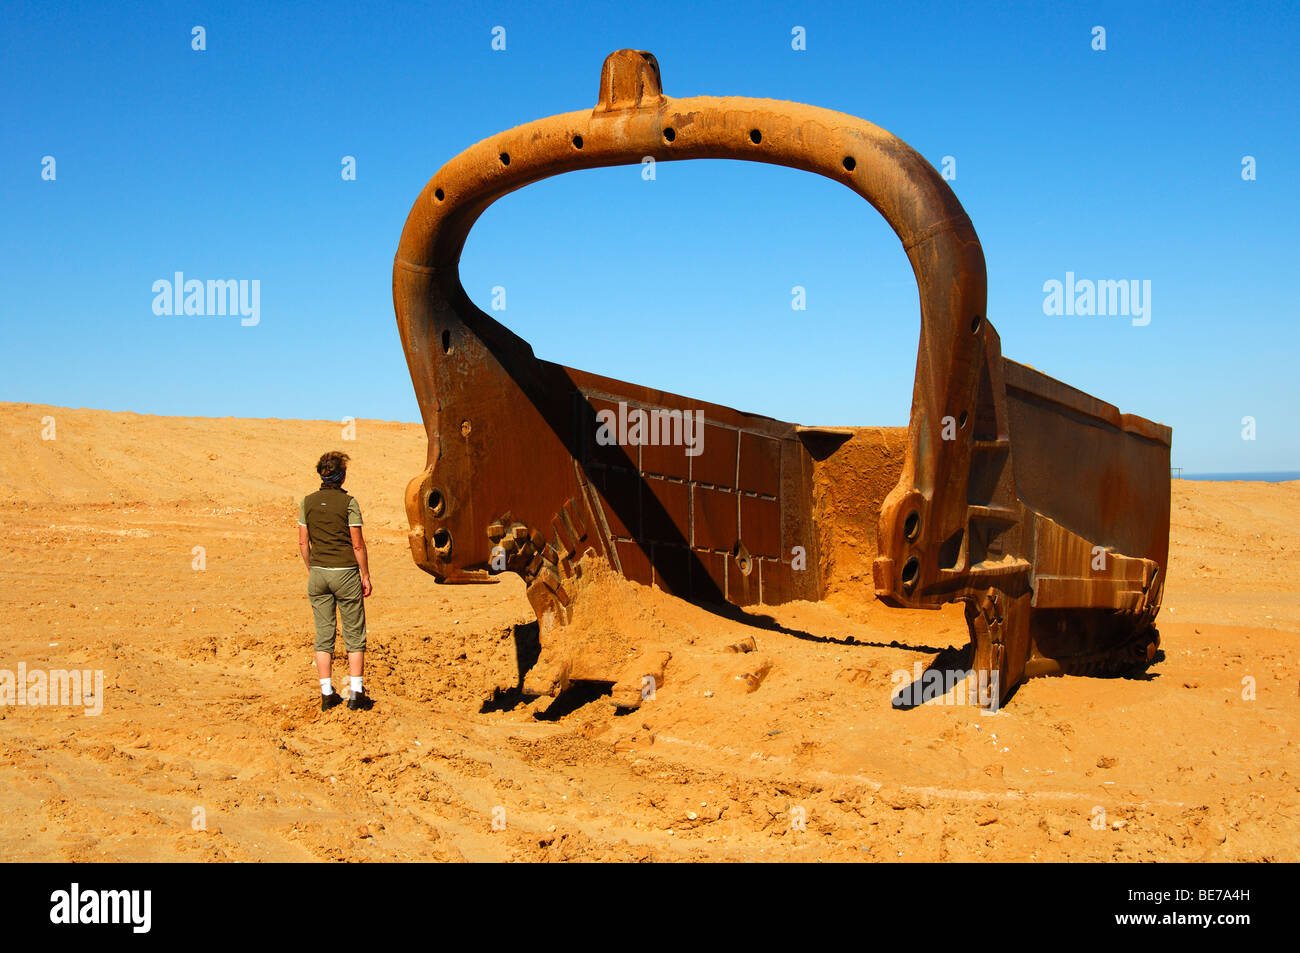 Person standing next to a large bucket of a dragline, De Beers Namaqualand diamond mine, Kleinzee, Northern Cape, - Stock Image